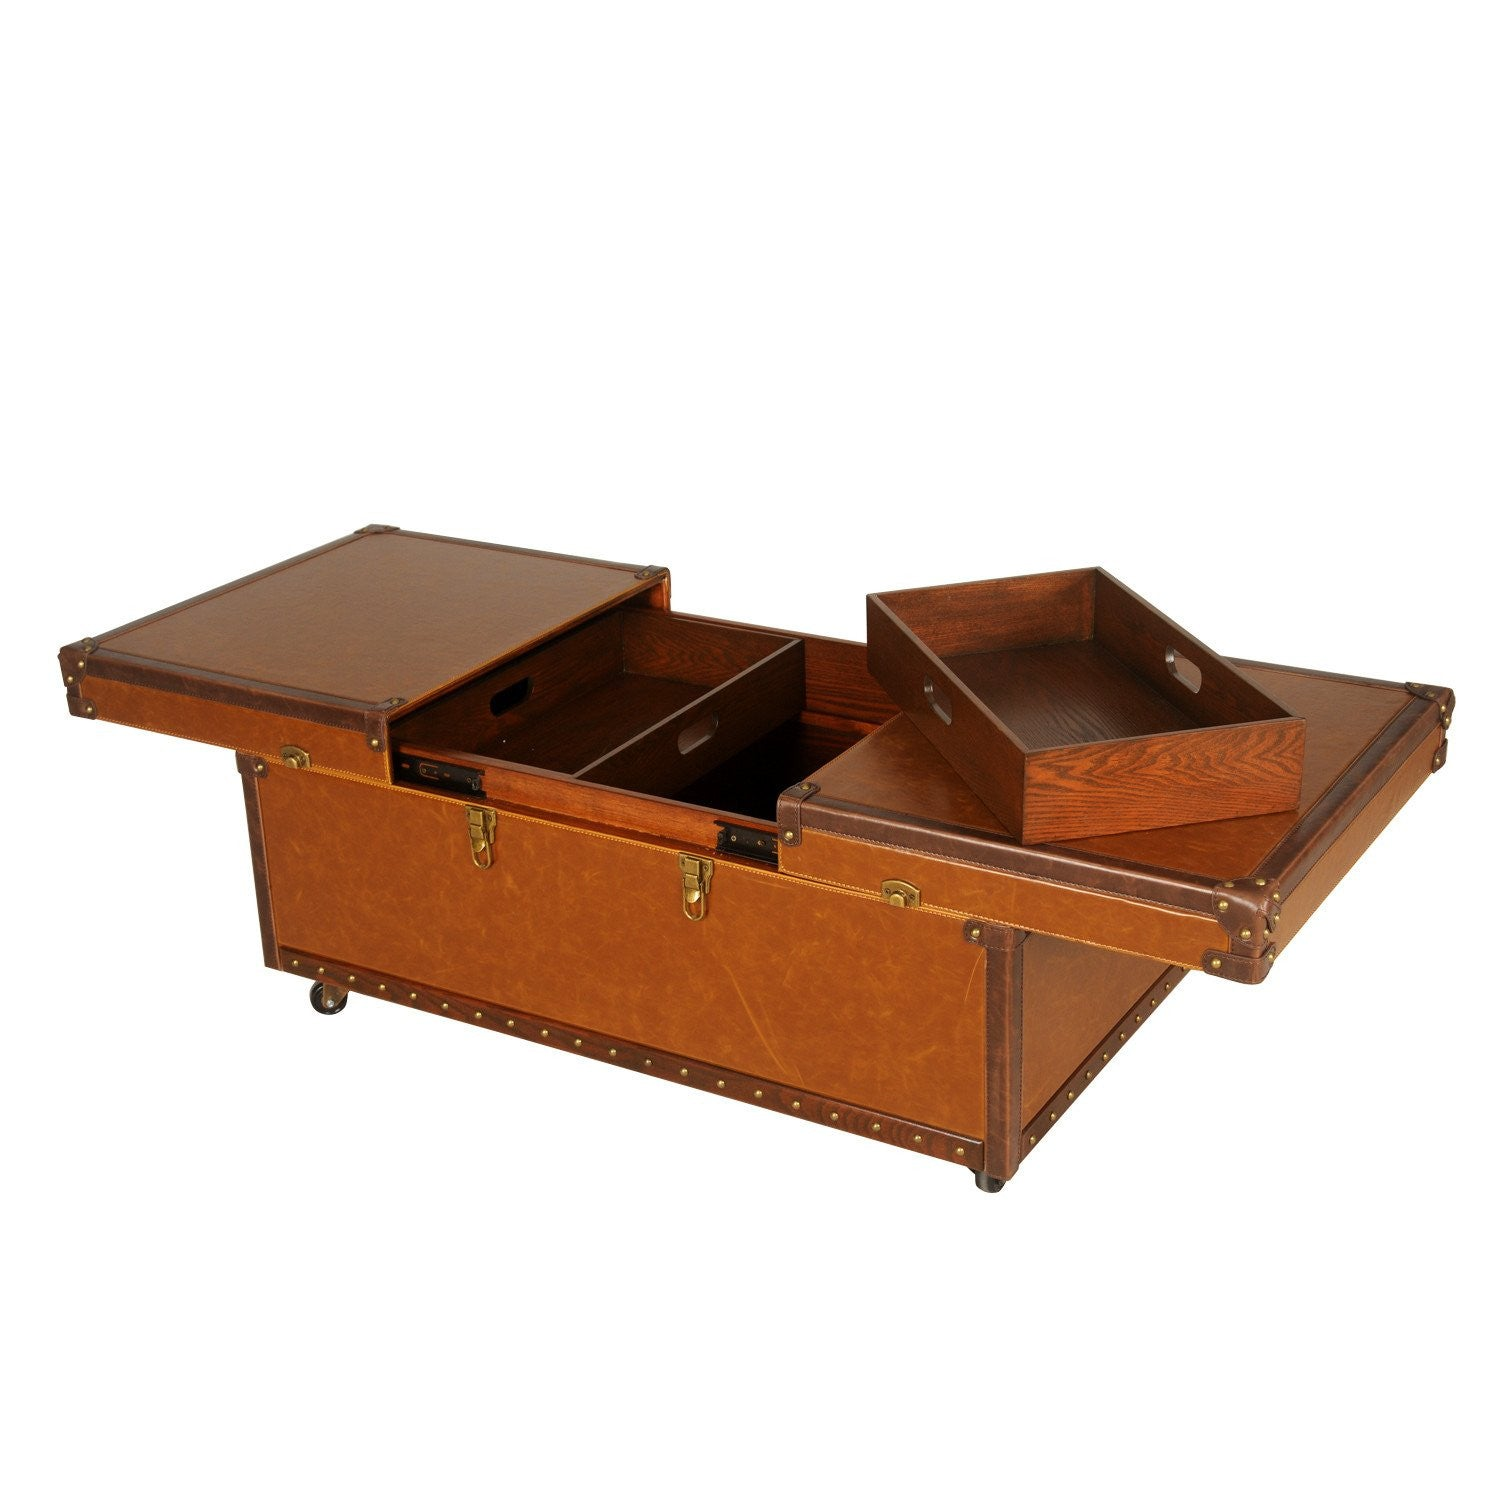 Waldorf storage trunk coffee table burnished brown apt2b waldorf storage trunk coffee table burnished brown geotapseo Images